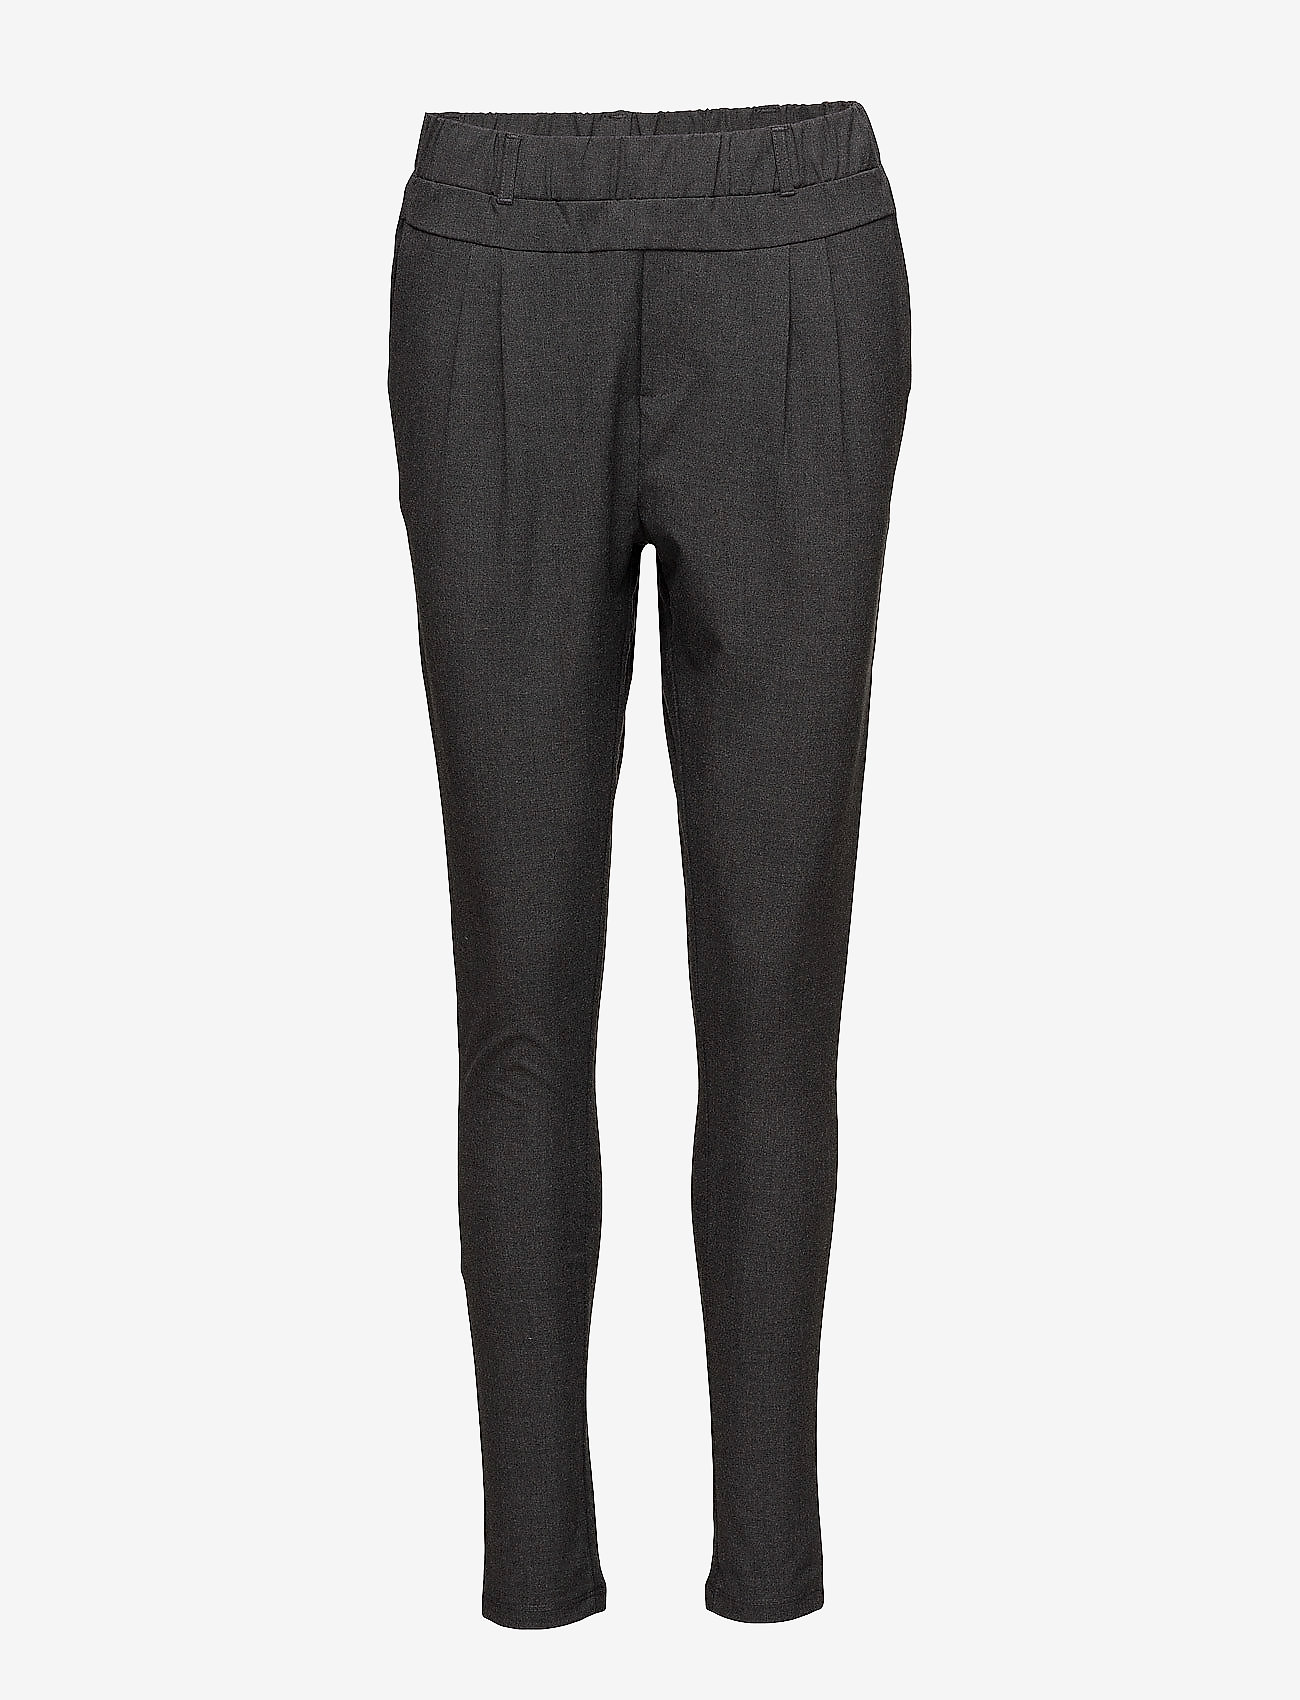 Kaffe - Jillian Pants - bukser med smalle ben - dark grey melange - 1